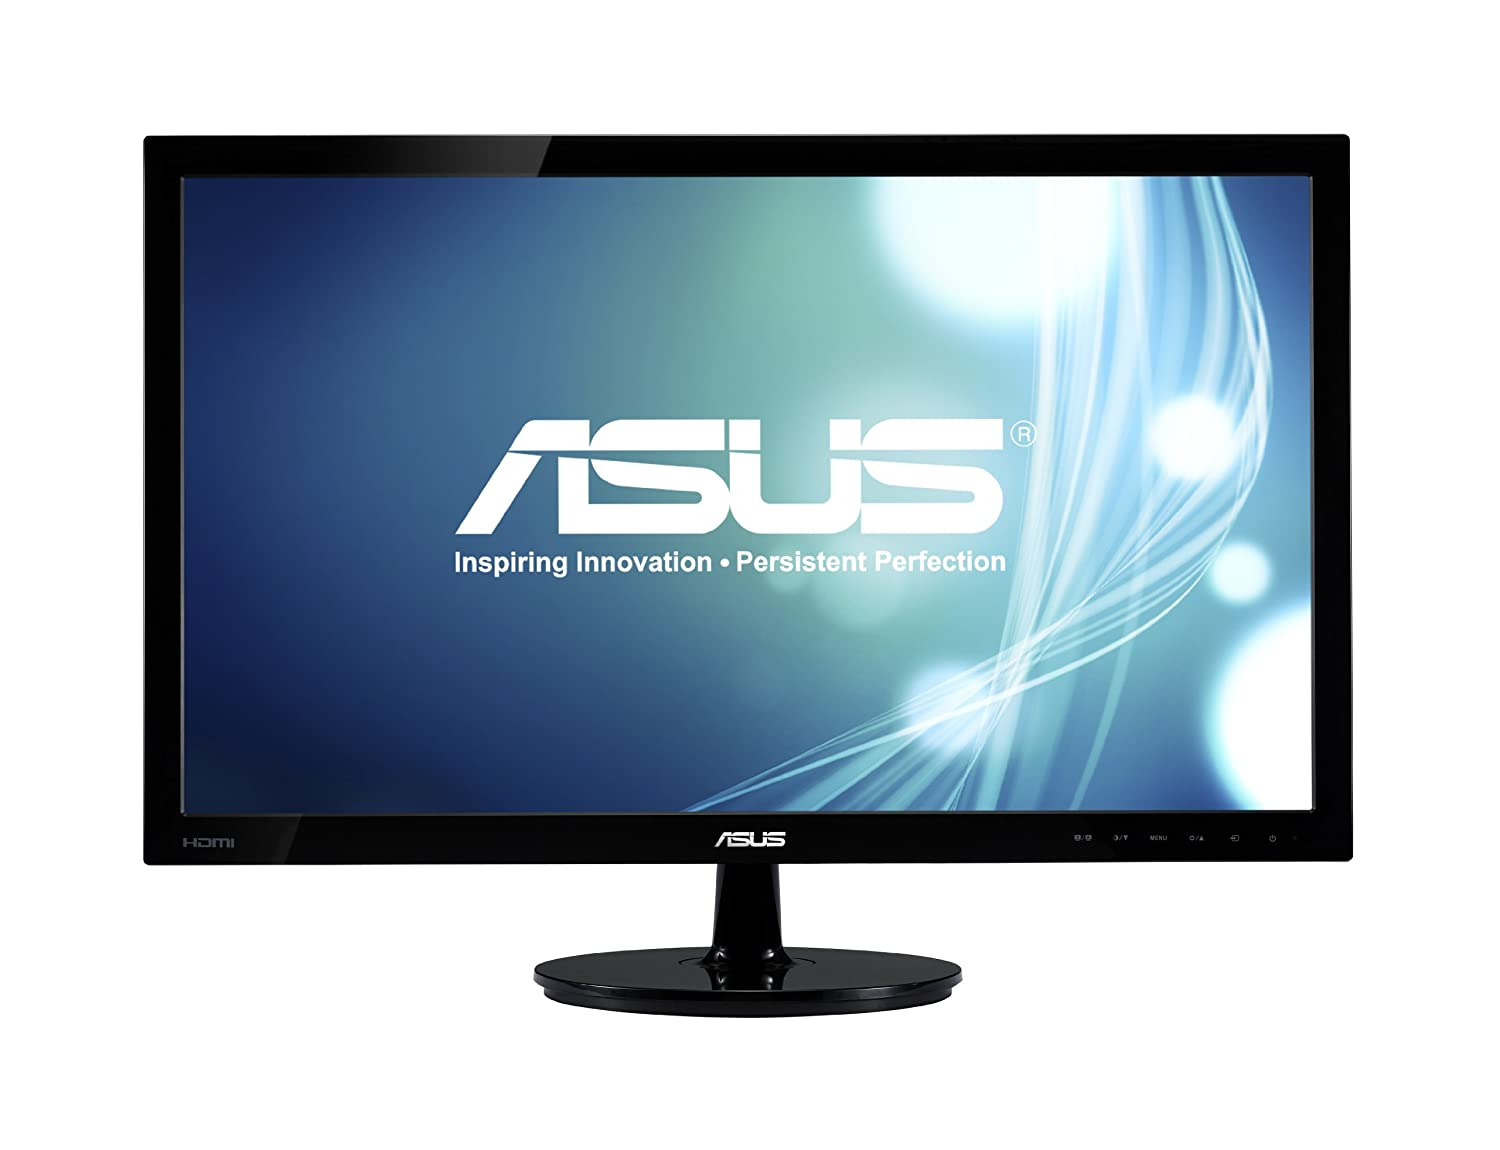 ASUS VS228H-P 21.5' LED Monitor (1920 x 1080)